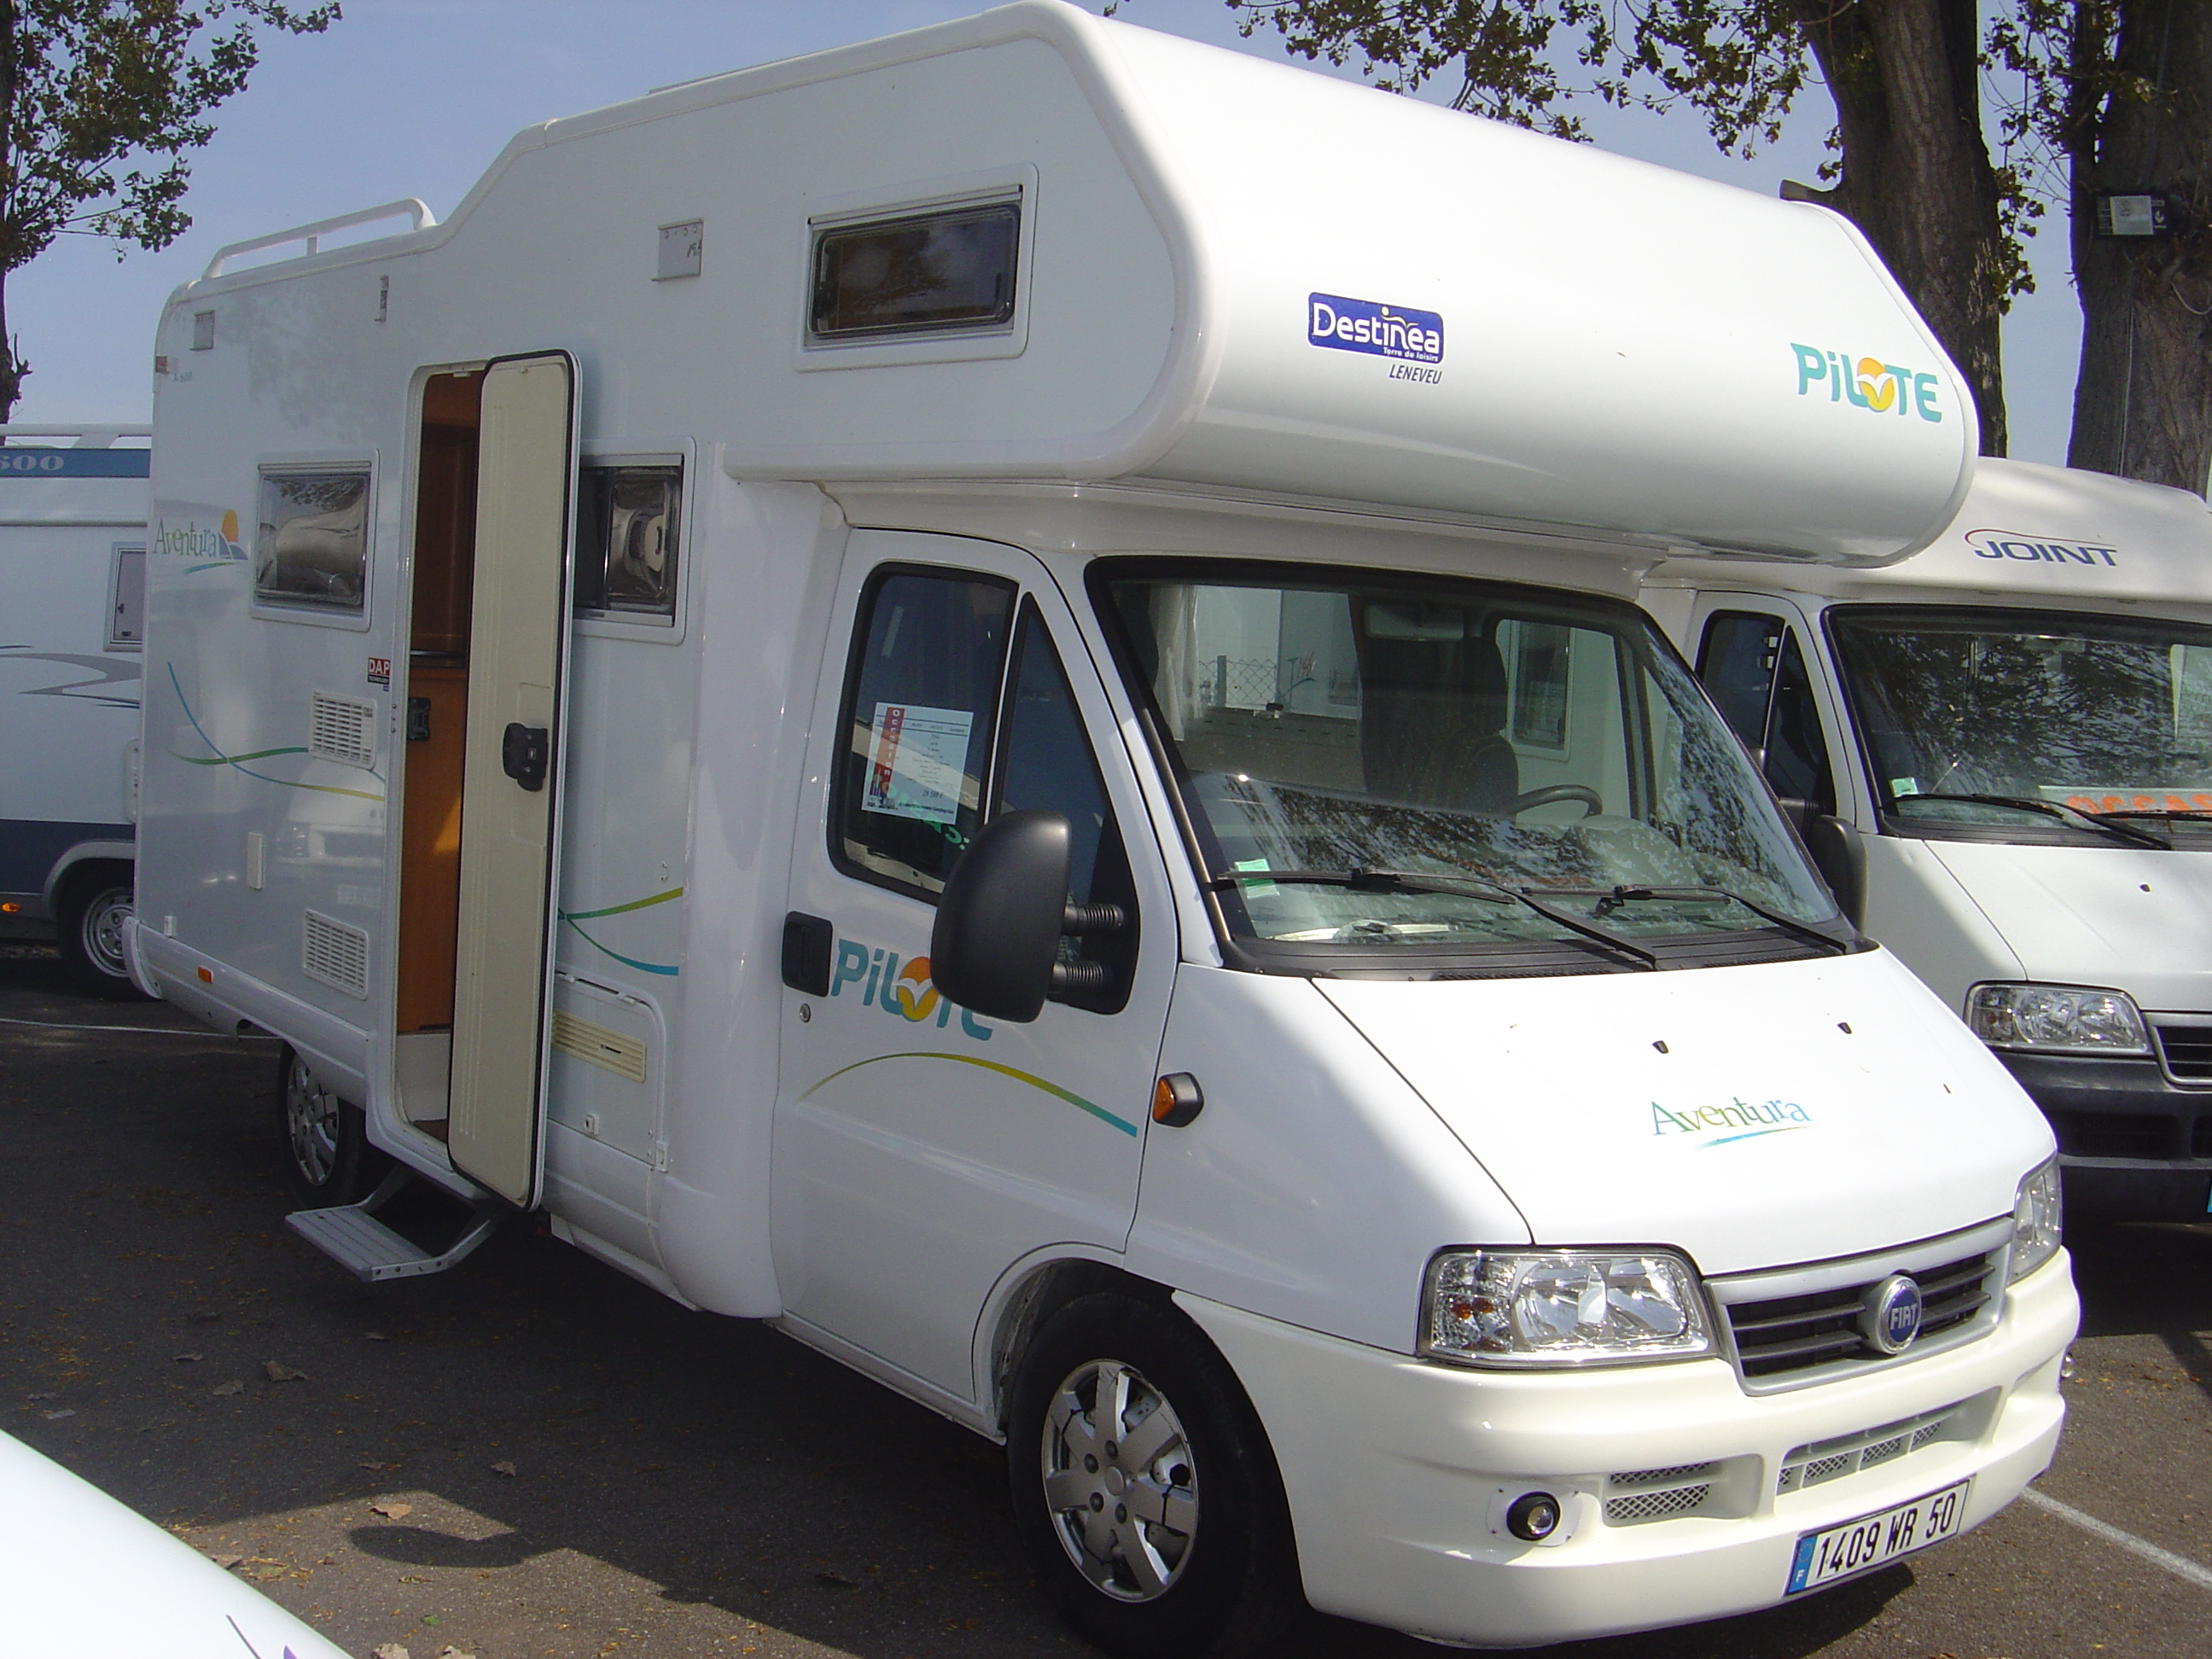 Occasion camping car pilote